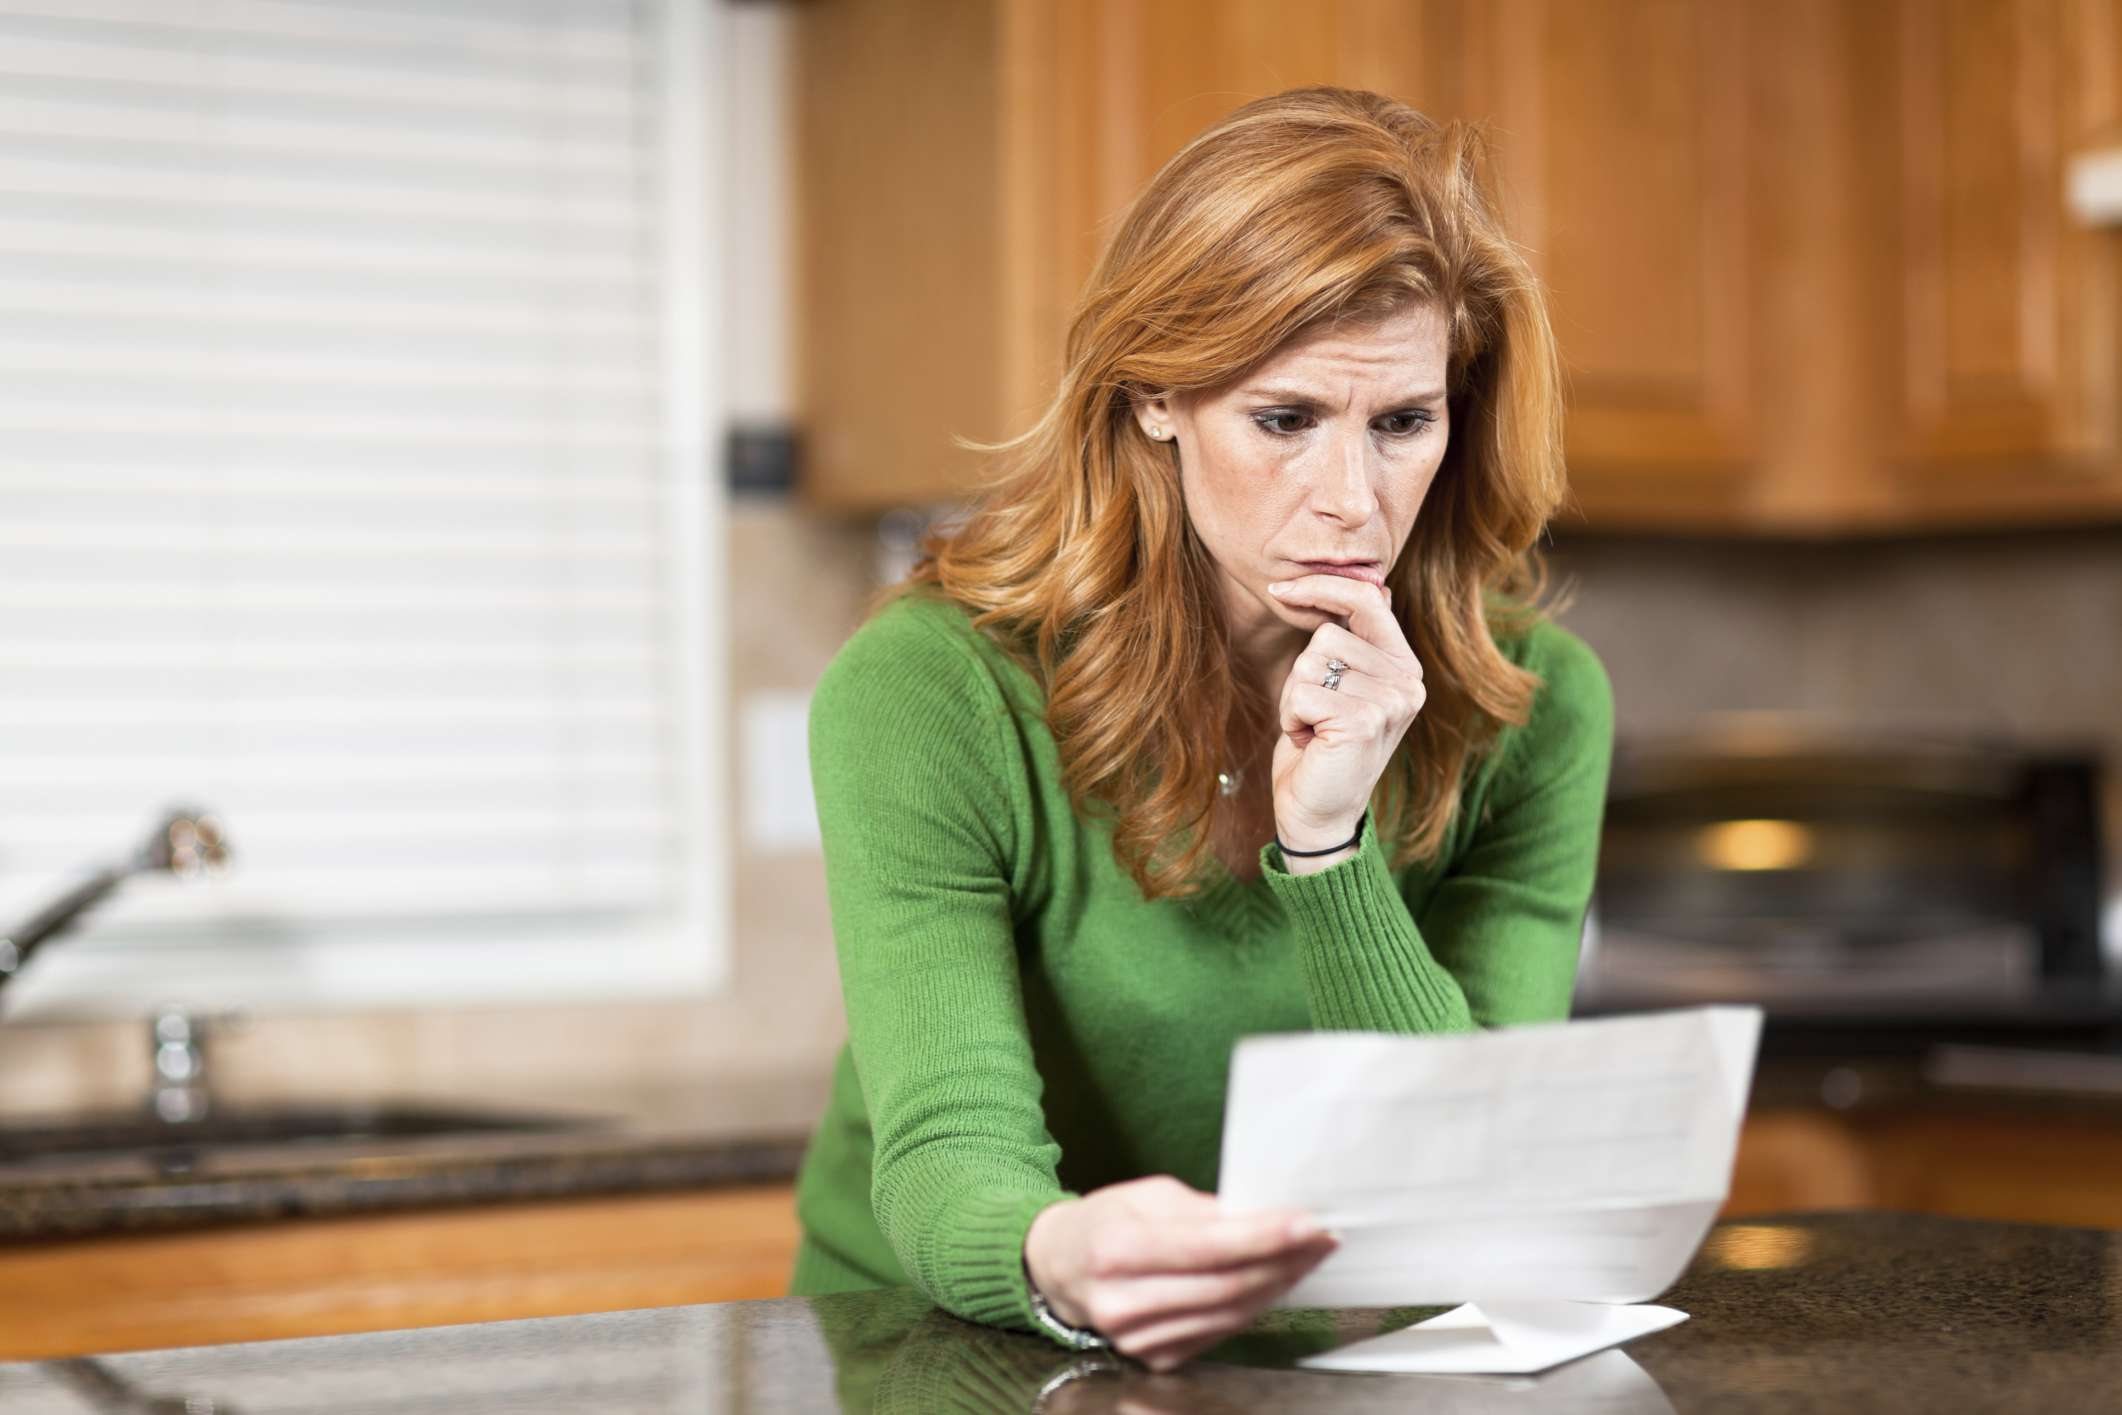 Tthoughtful woman reading paper